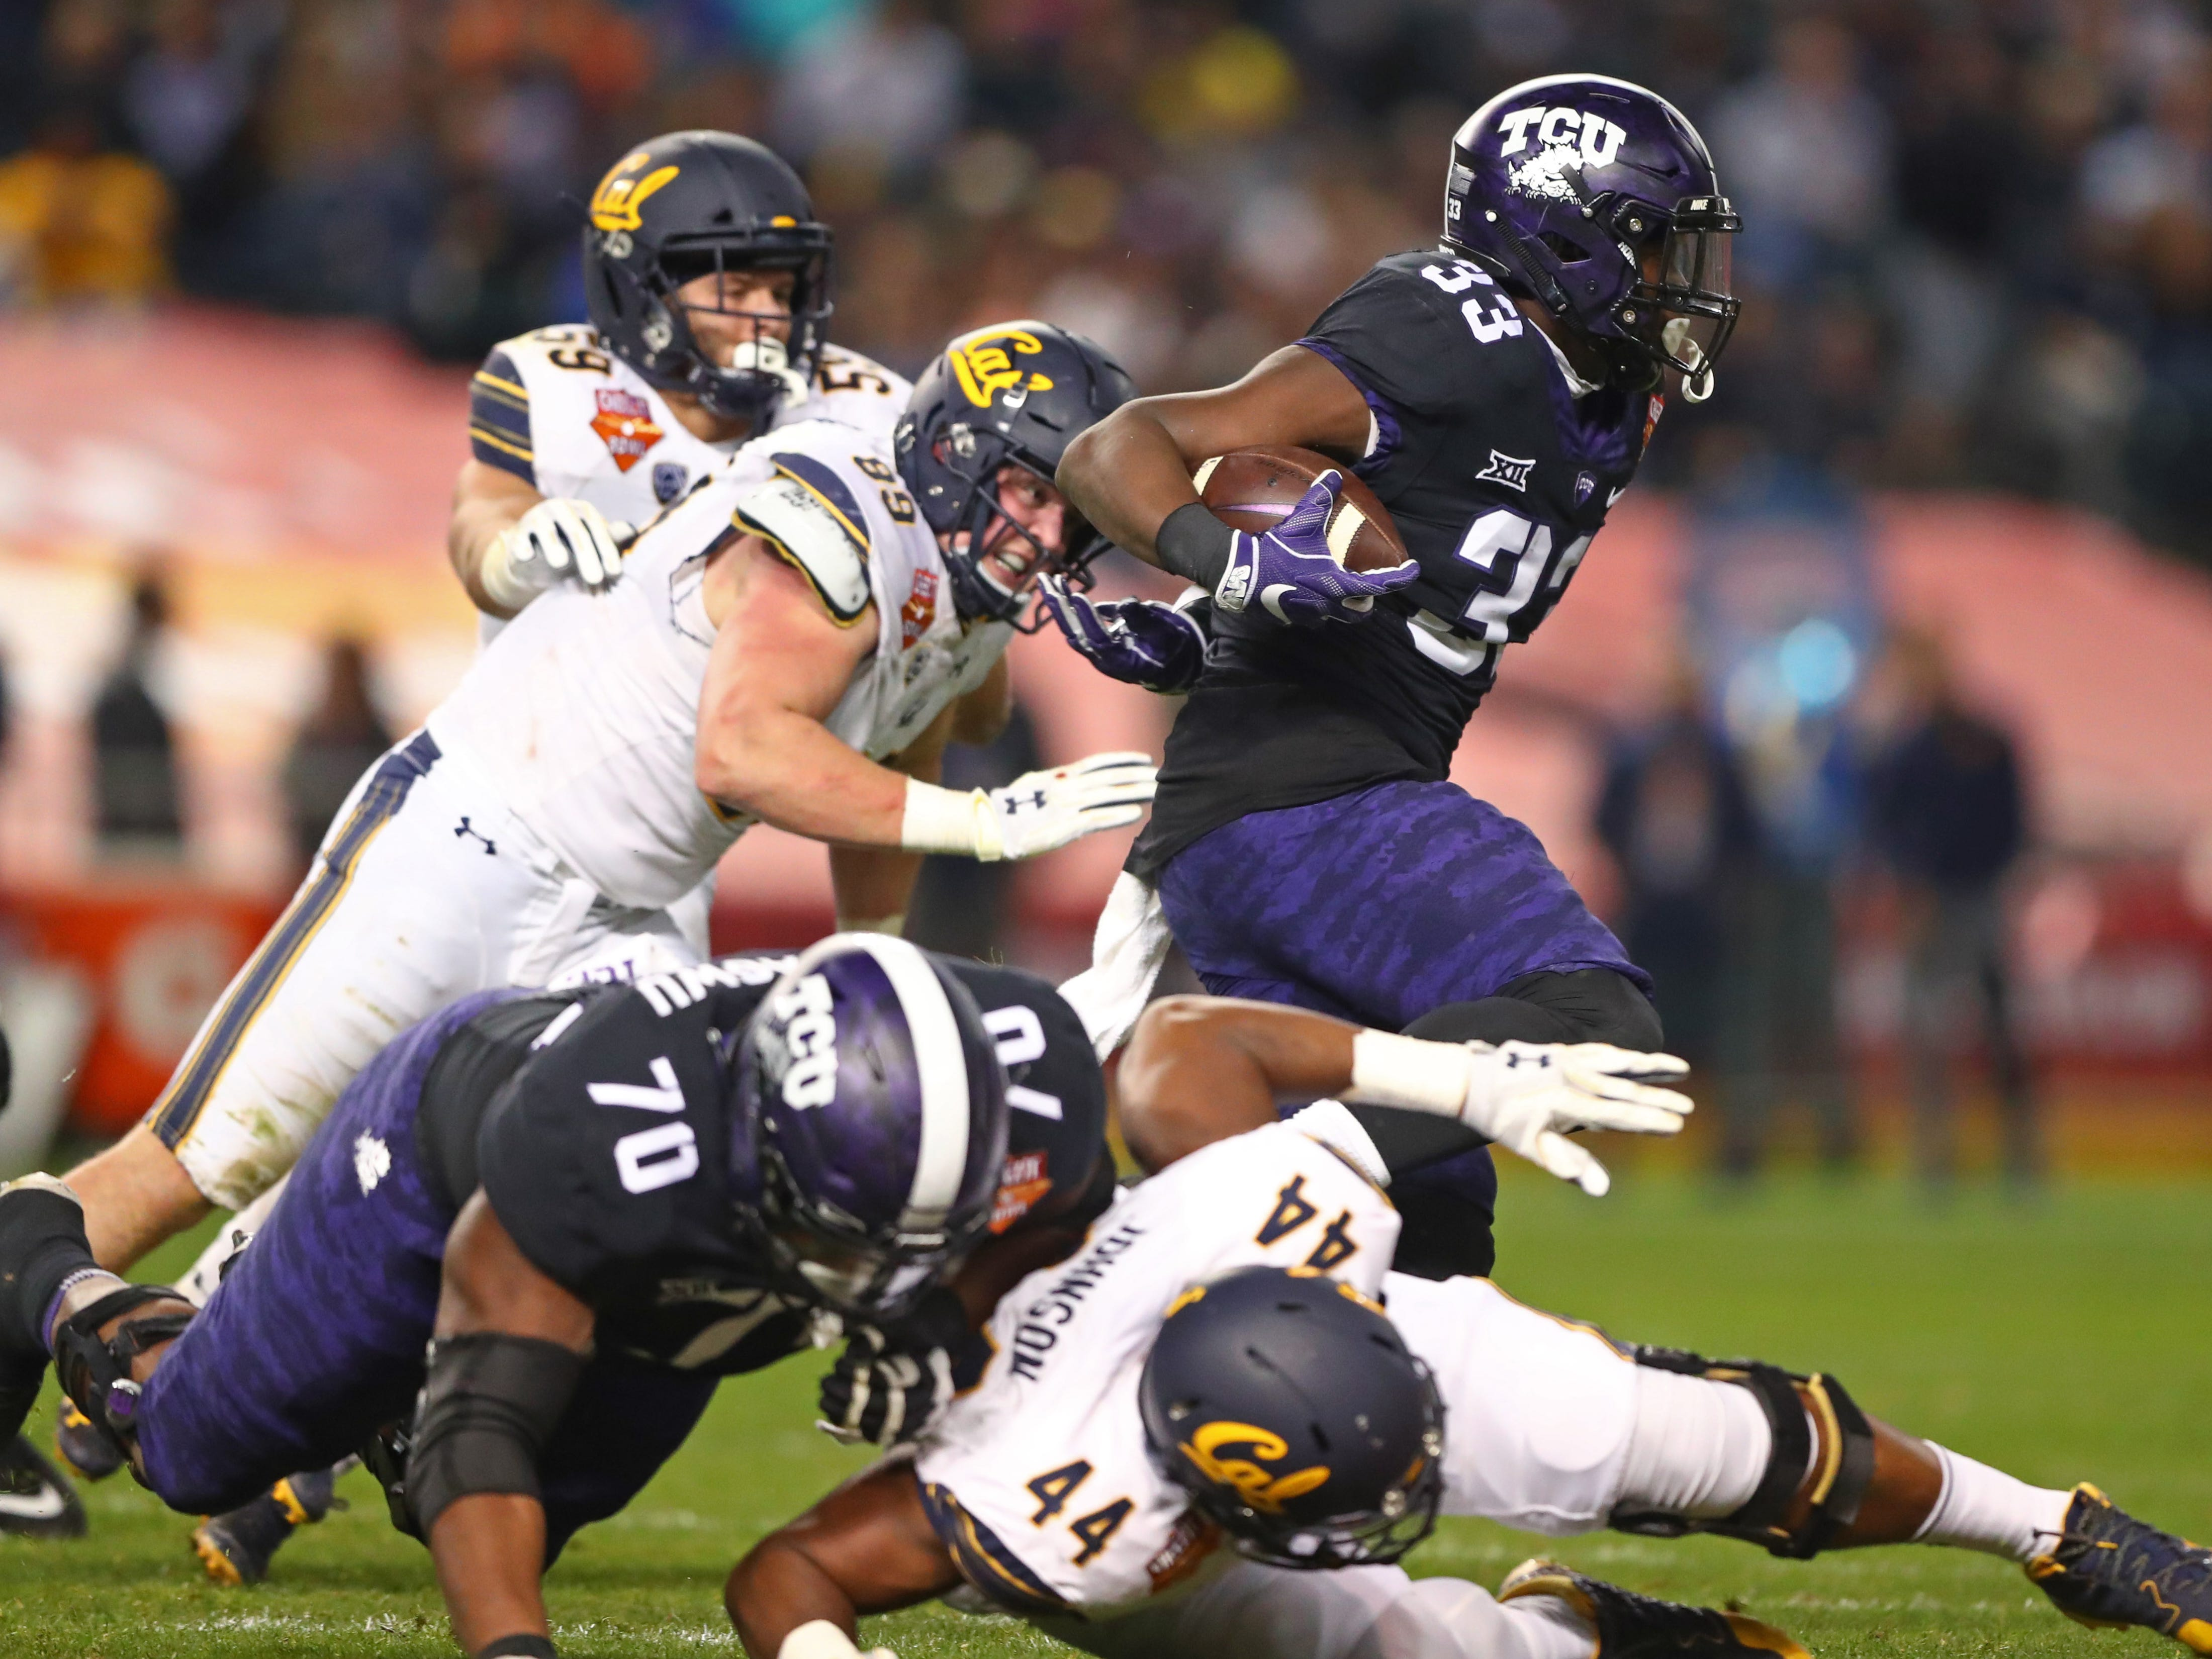 TCU running back Sewo Olonilua (33) runs against California in the Cheez-It Bowl at Chase Field.